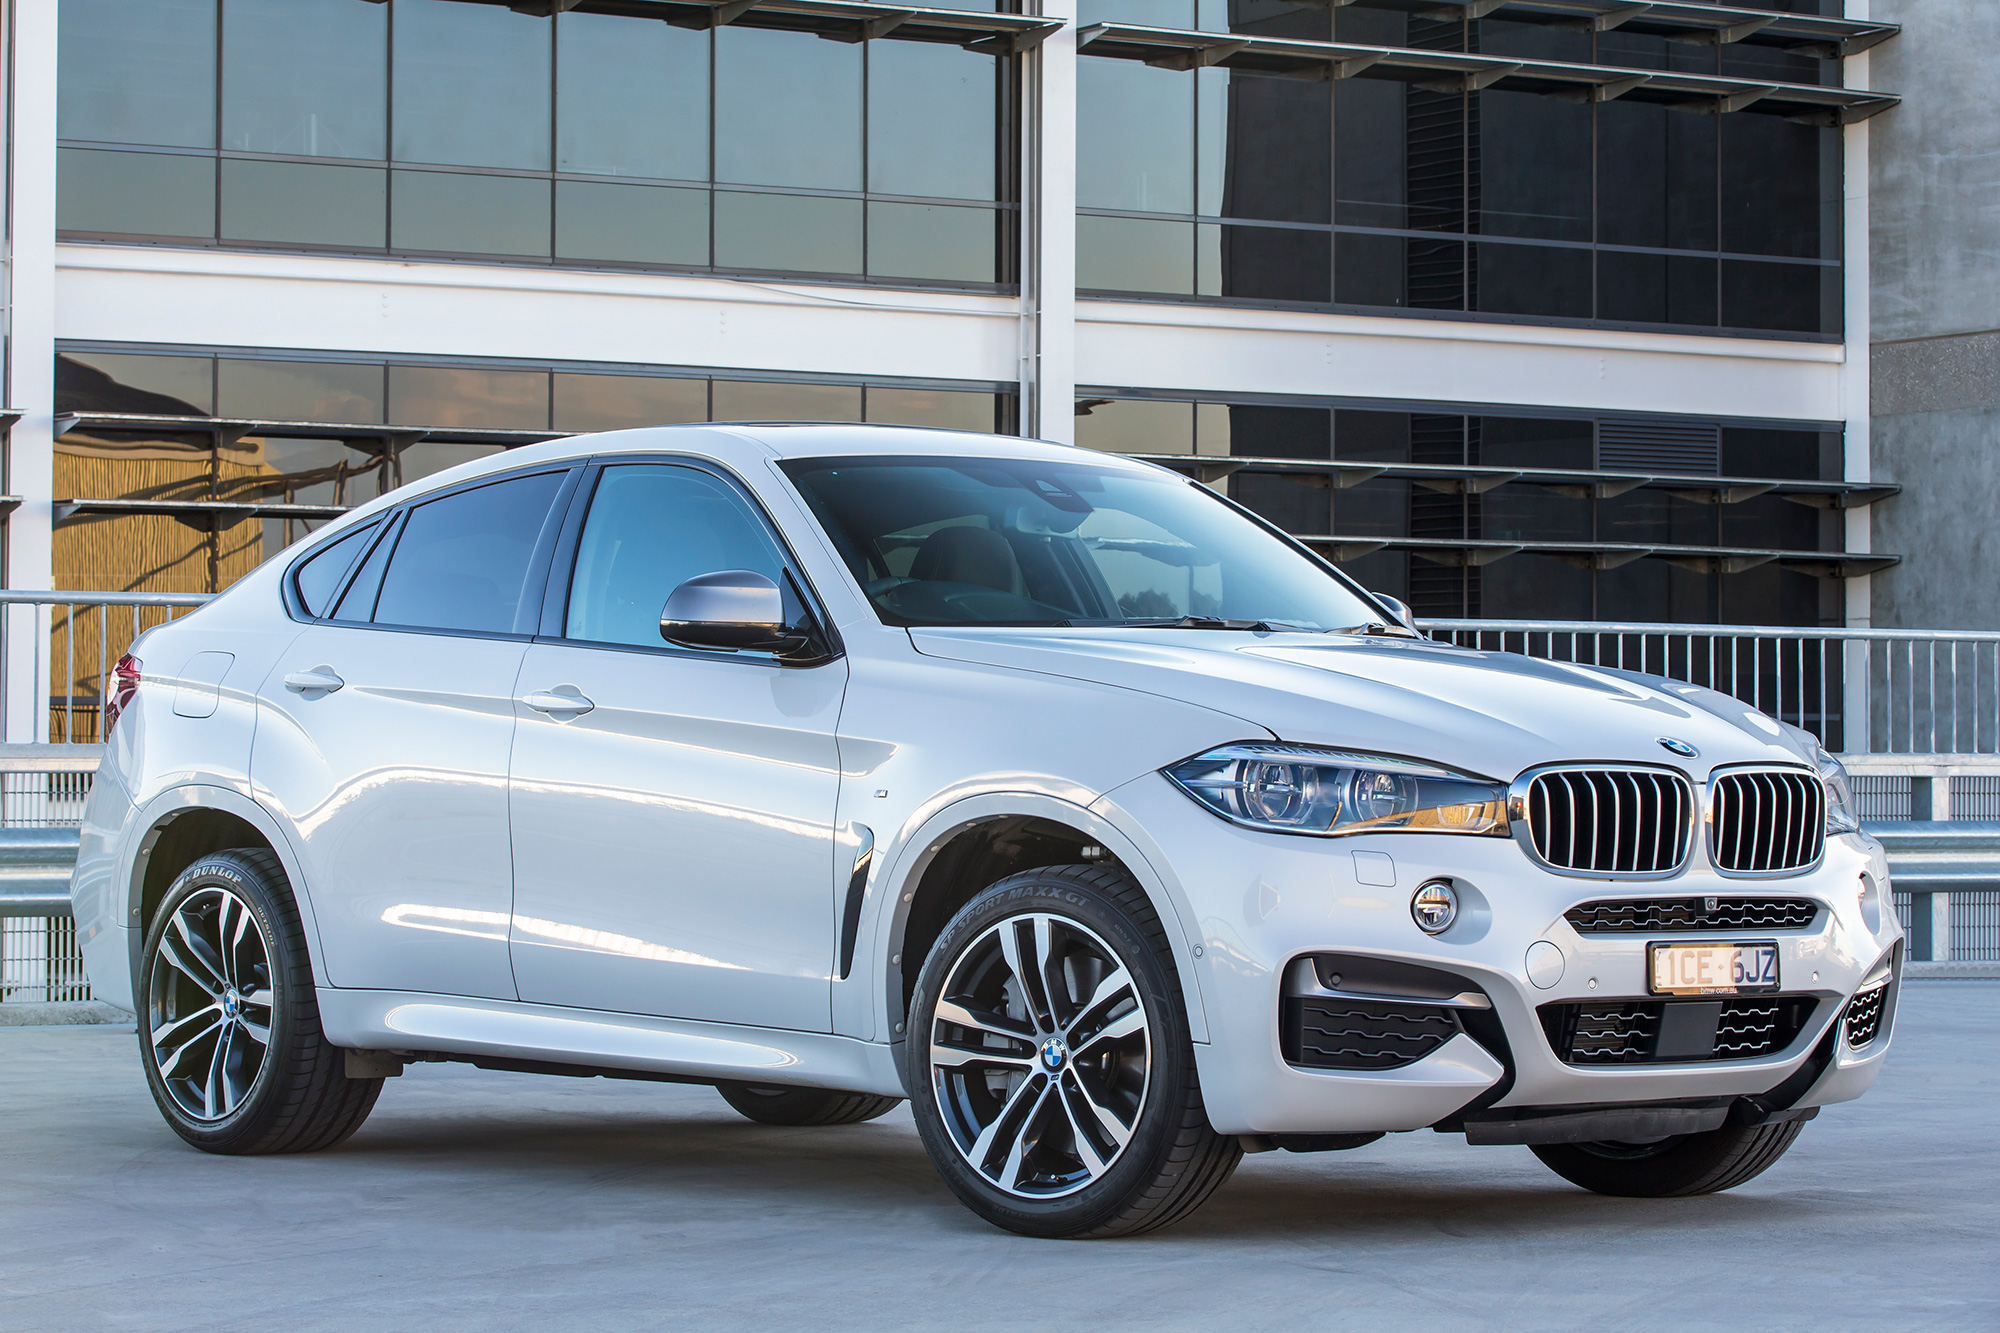 2015 bmw x6 pricing and specifications photos caradvice. Black Bedroom Furniture Sets. Home Design Ideas